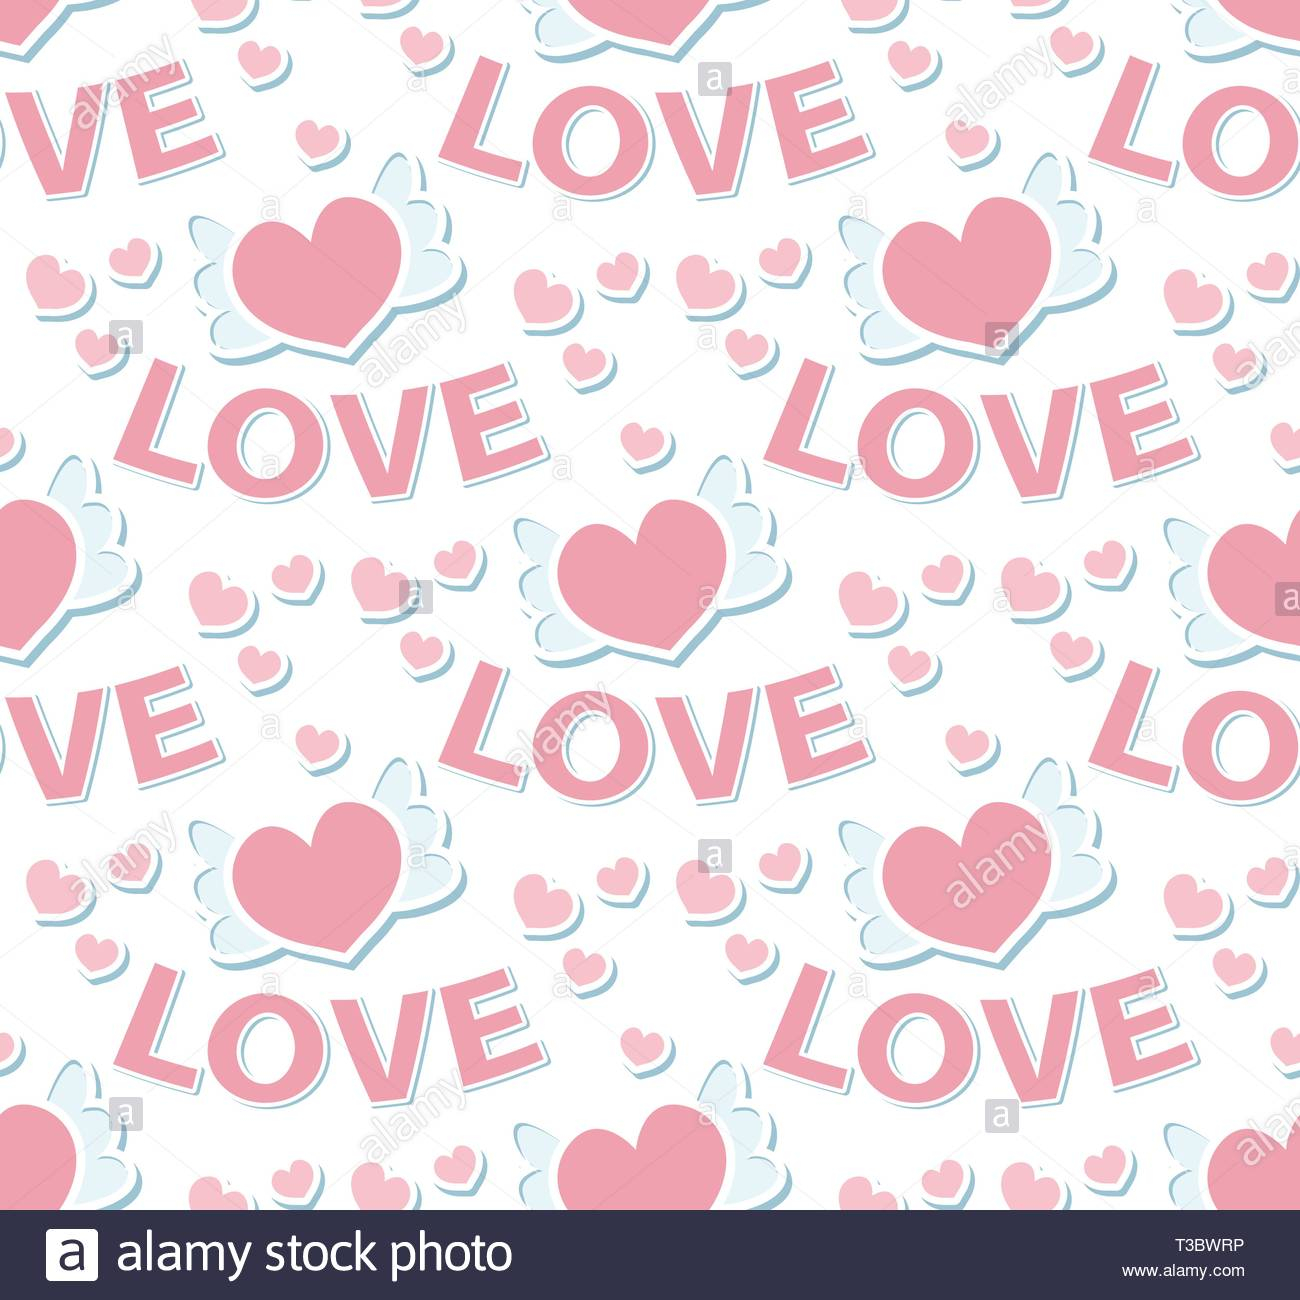 love seamless pattern valentines day endless texture background vector illustration T3BWRP